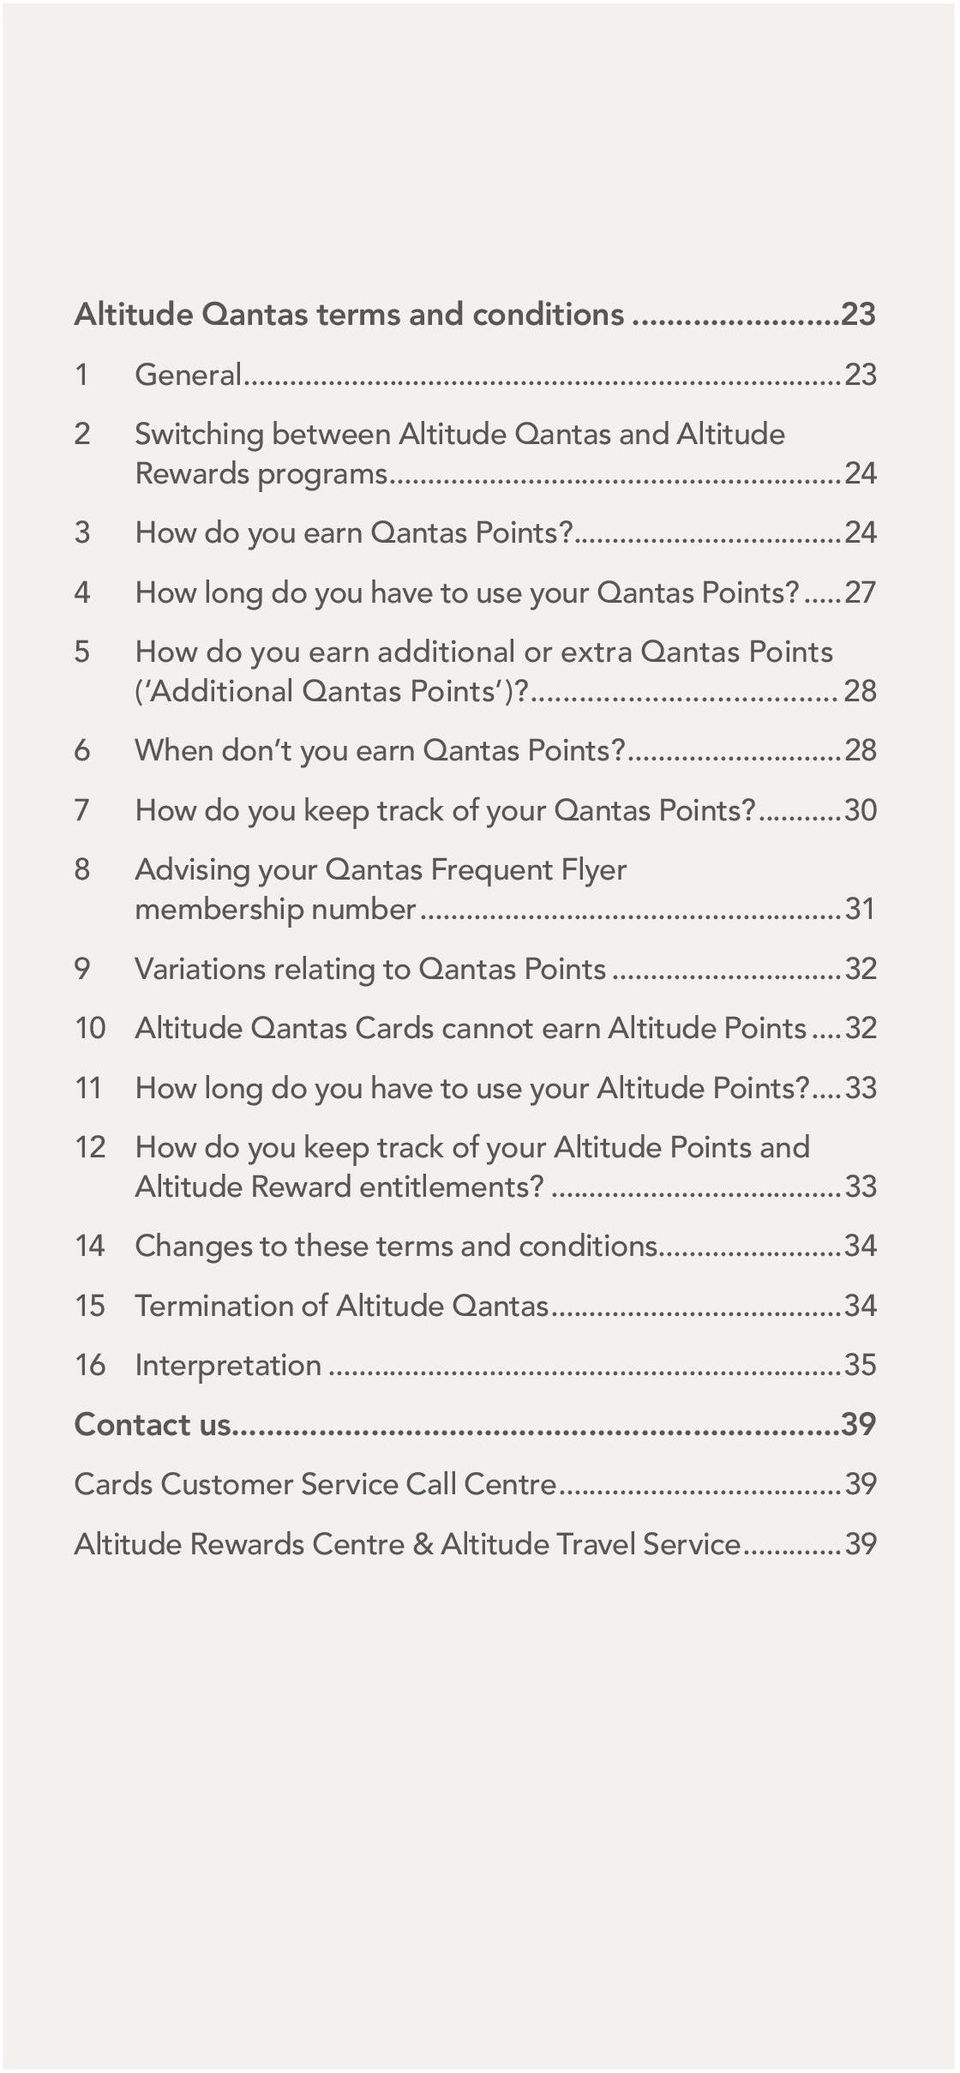 ...28 7 How do you keep track of your Qantas Points?...30 8 Advising your Qantas Frequent Flyer membership number...31 9 Variations relating to Qantas Points.